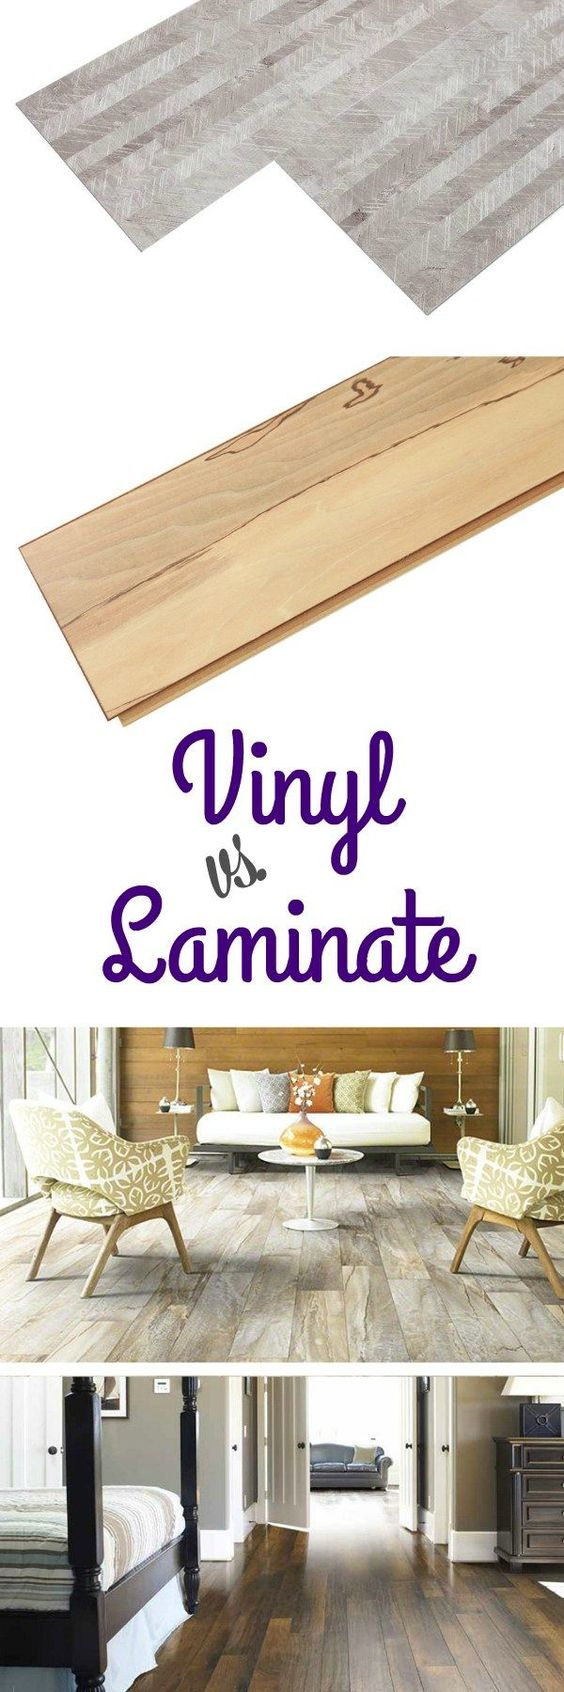 laminate vs vinyl flooring vinyls blog and laminate. Black Bedroom Furniture Sets. Home Design Ideas